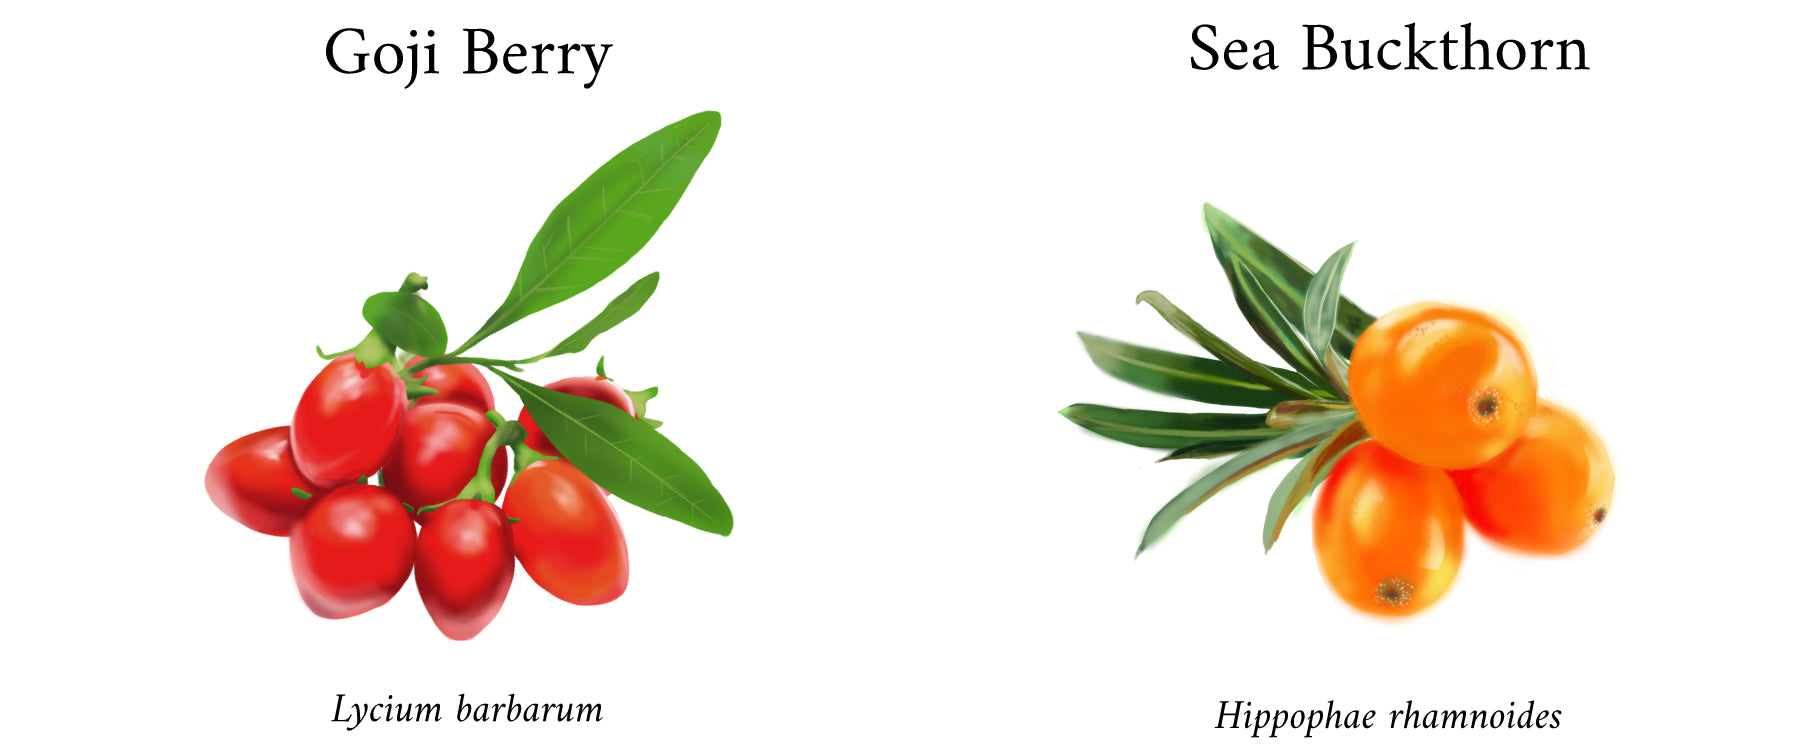 goji berry, wolf berry, sea buckthorn, sea berry, Tibetan, miracle berries, superfood, antioxidant, lycium barbarum, hippophae rhamnoides, sourcing, farming